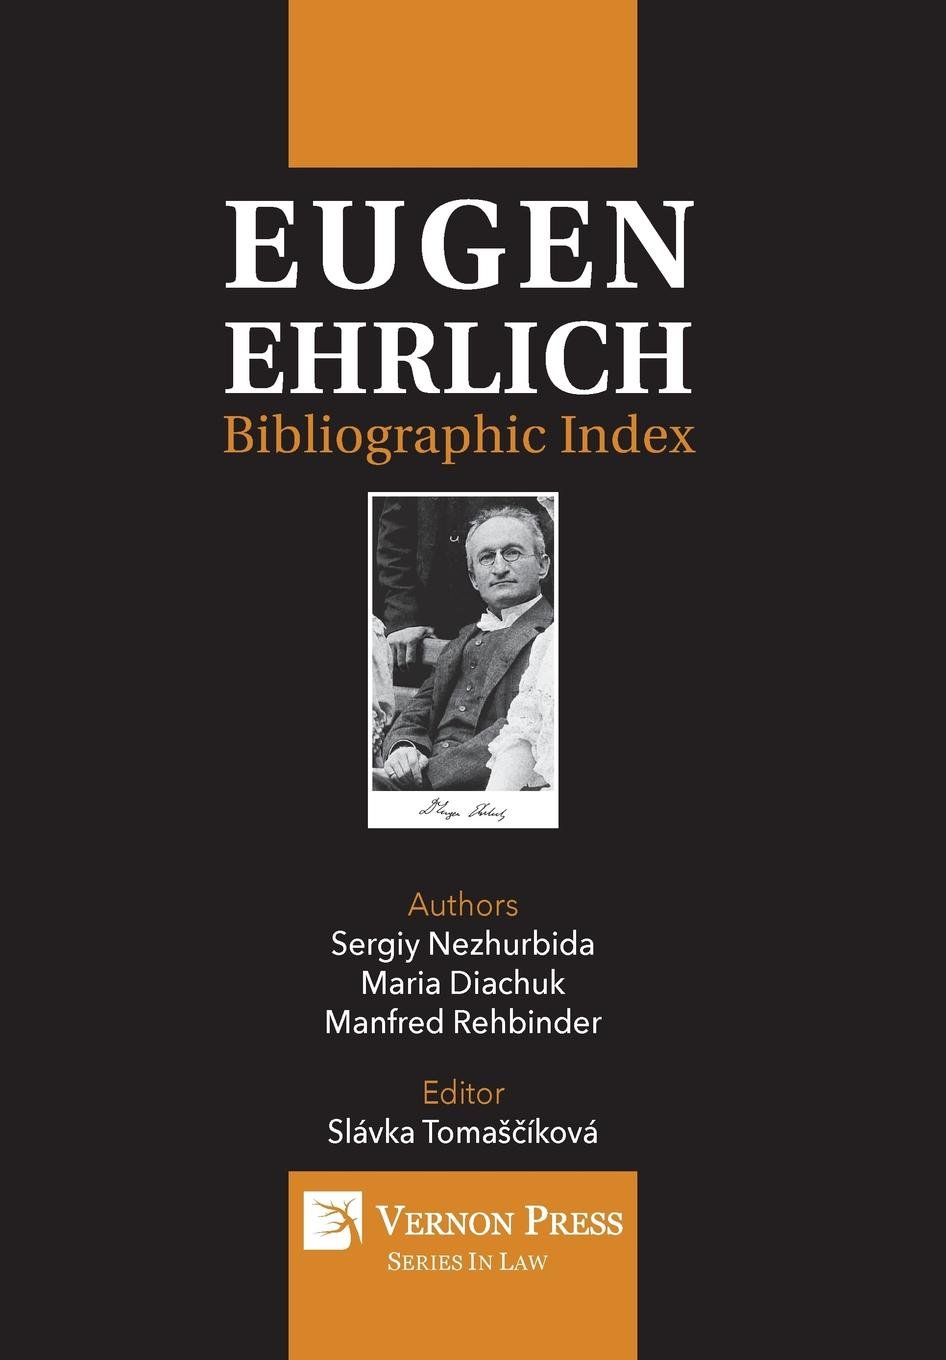 Eugen Ehrlich: Bibliographic Index (Series in Law): Sergiy